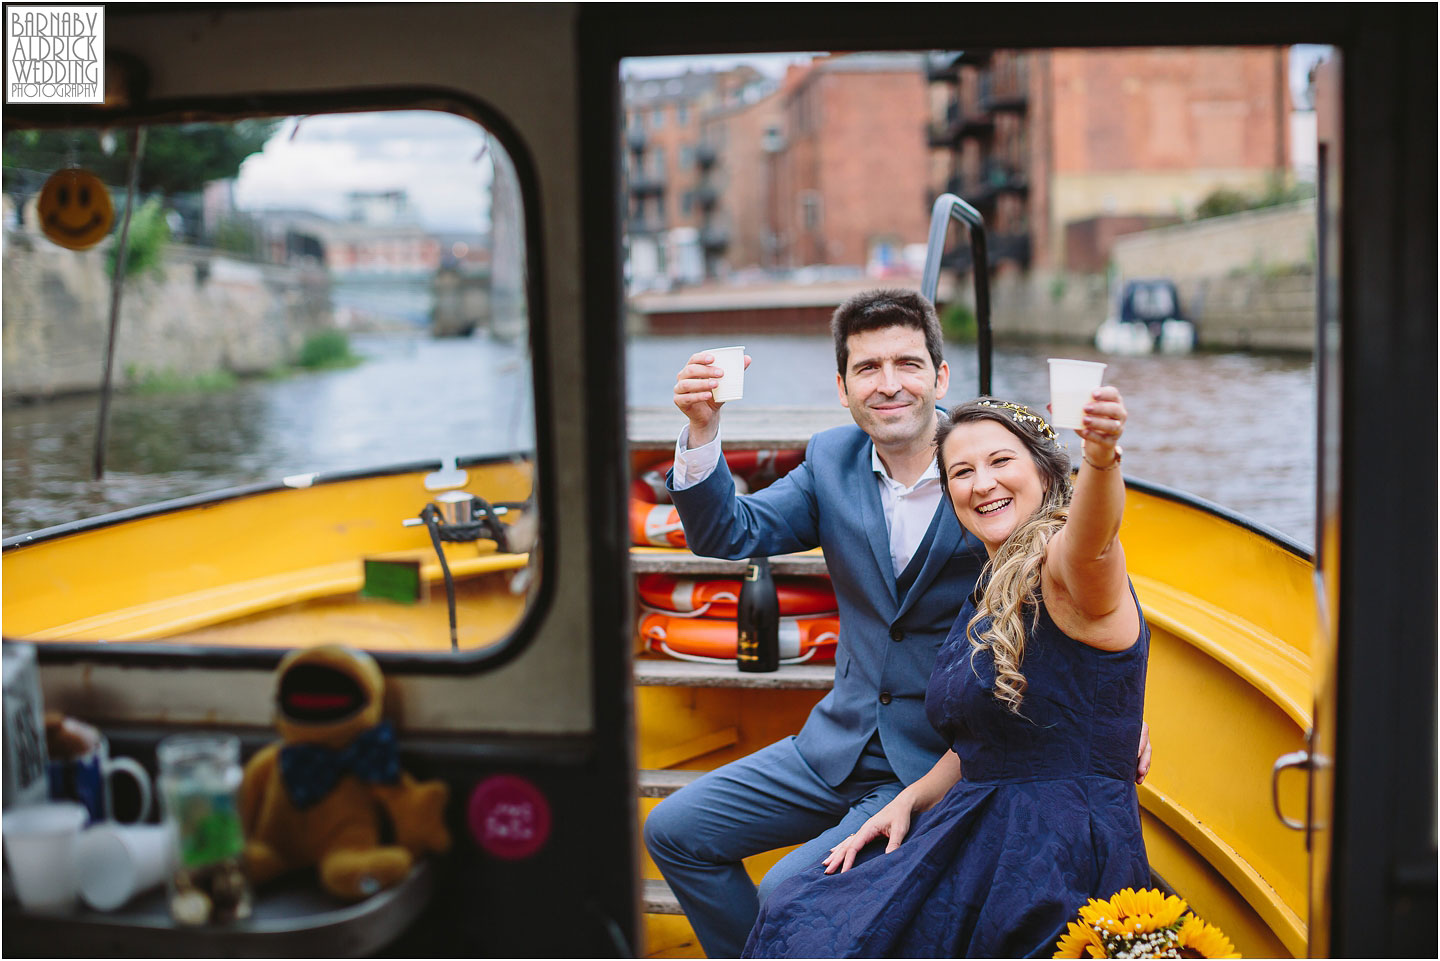 Wedding photos on the Leeds Dock yellow boat in Leeds, Amazing Yorkshire Wedding Photos, Best Yorkshire Wedding Photos 2018